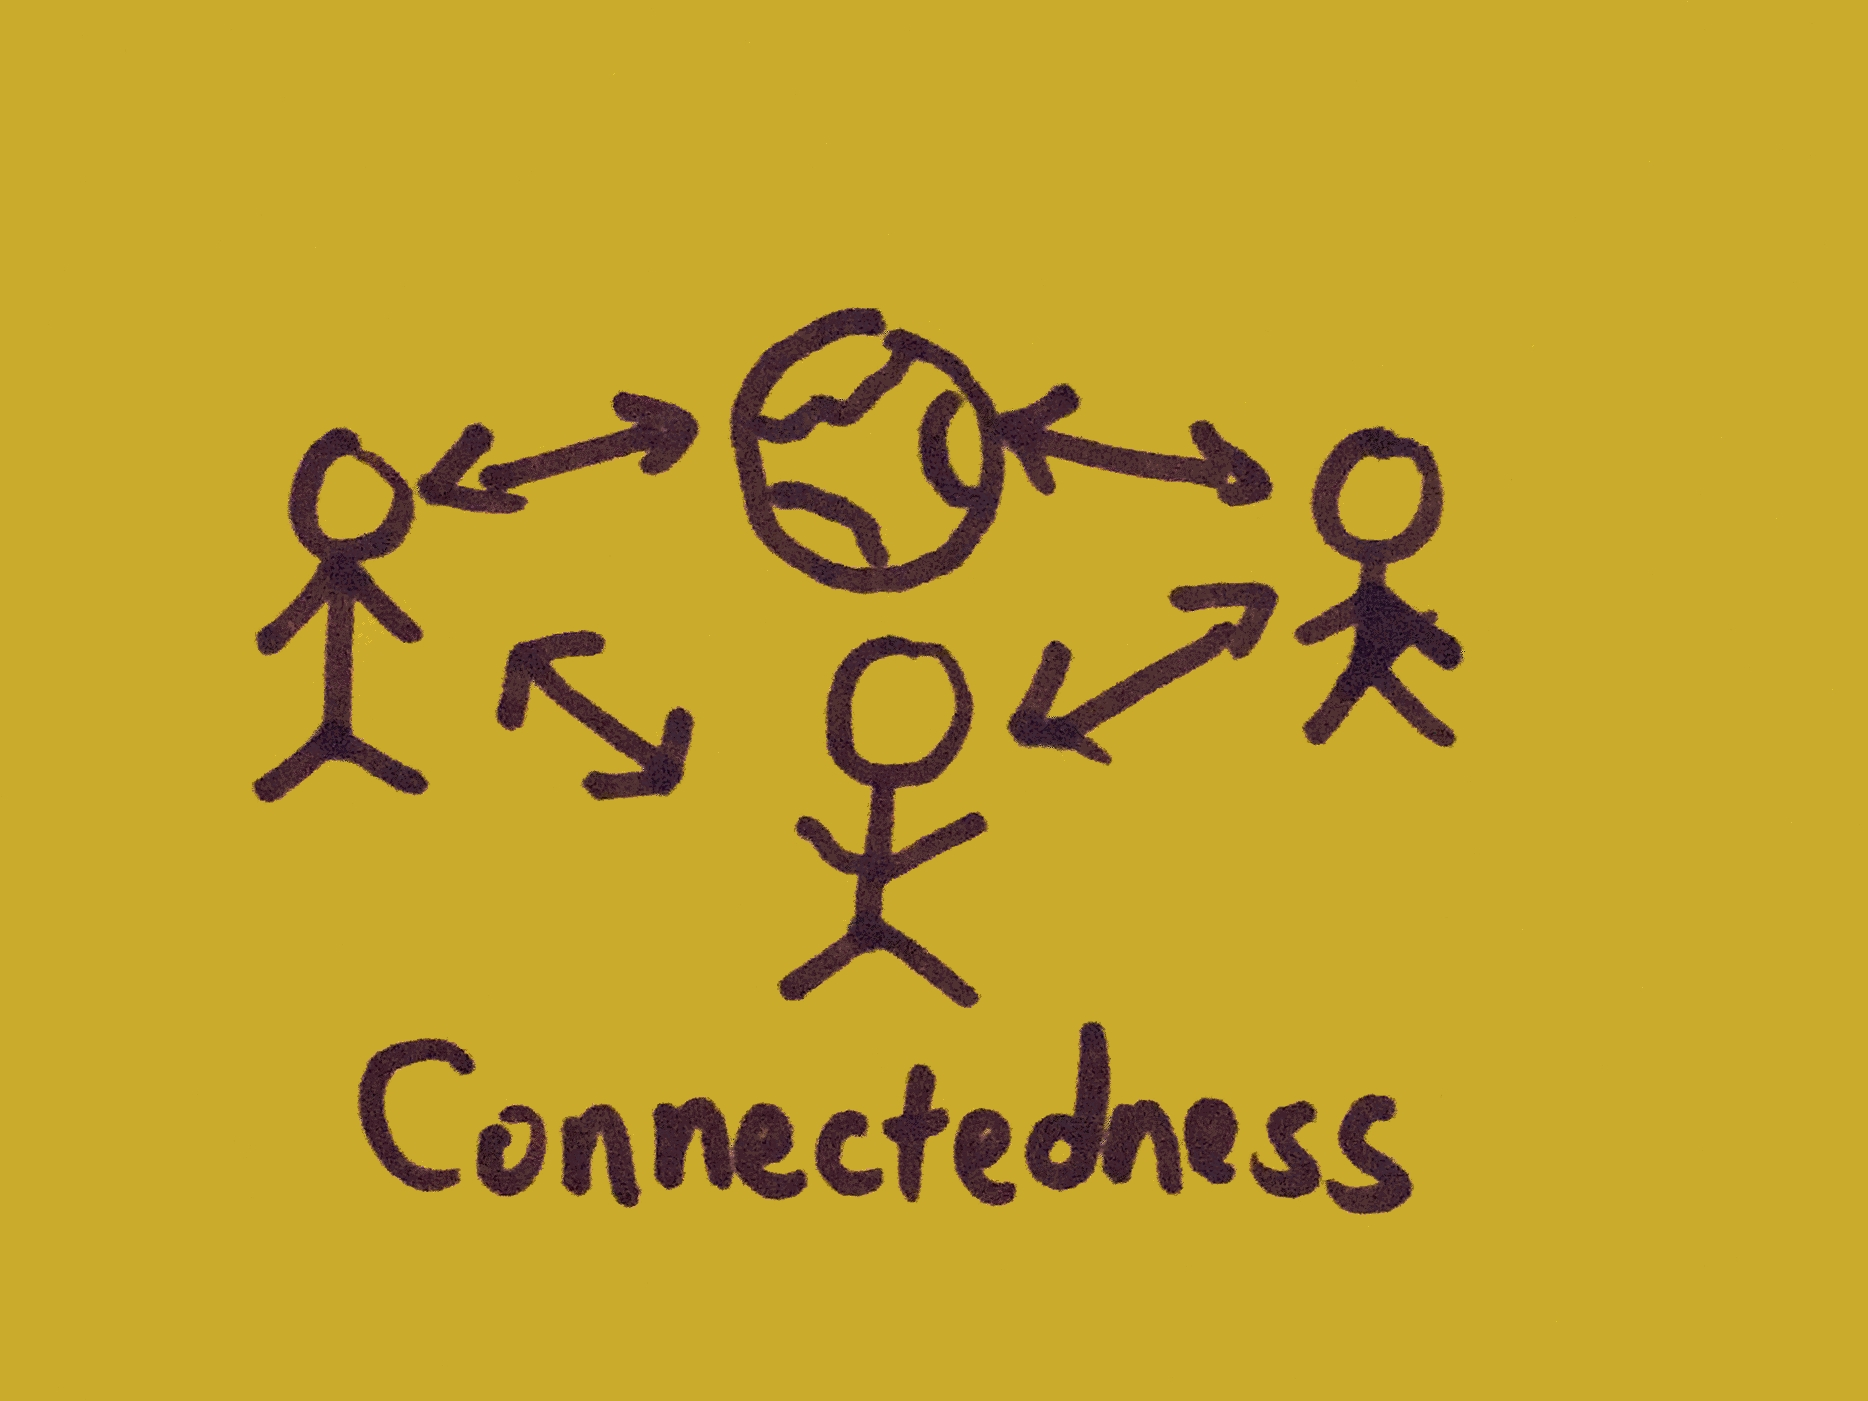 Connectedness Strengthsfinder People world Connect